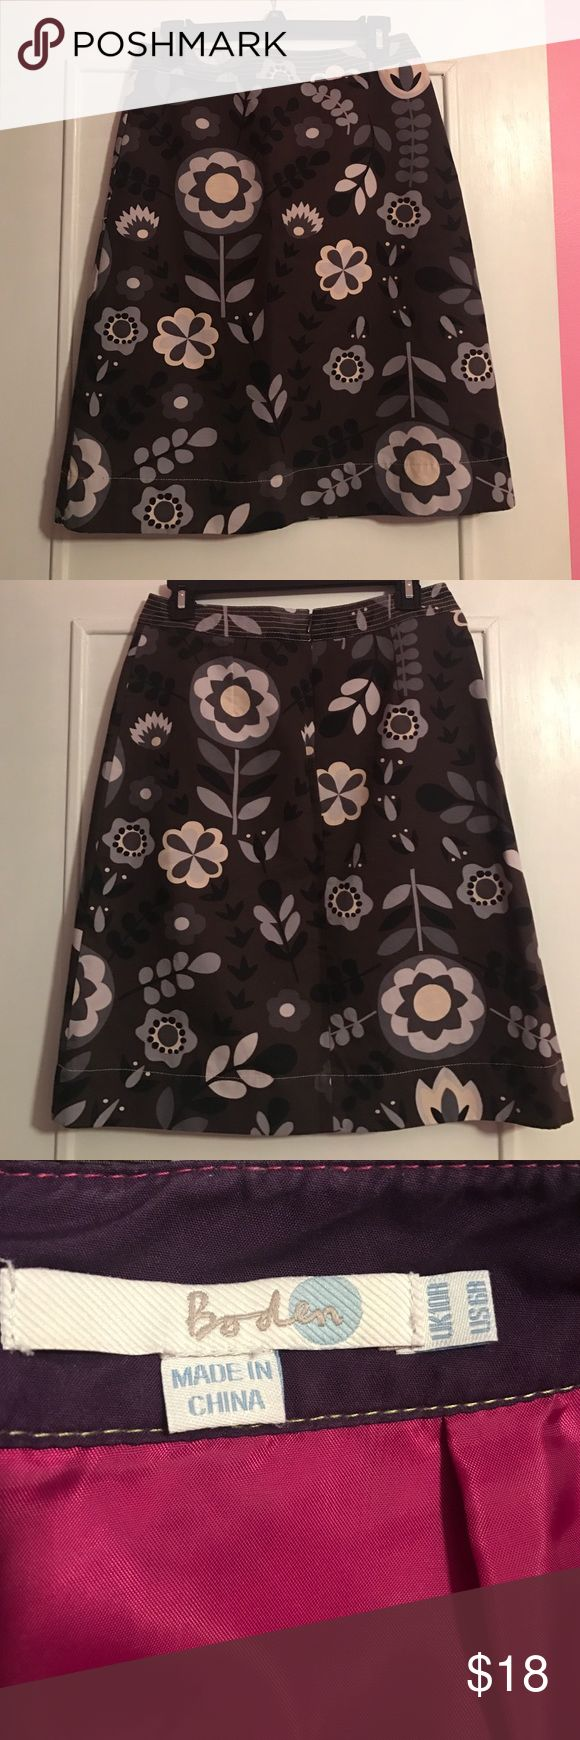 "Boden Muted Floral Skirt Excellent condition Boden Skirt in brown, grays, black, and cream. Size 10R U.K., 6R US. Waist 14"" laid flat, length 22"". Back zipper. Fully lined. Outer is 100% cotton and has a denim feel. Boden Skirts Midi"